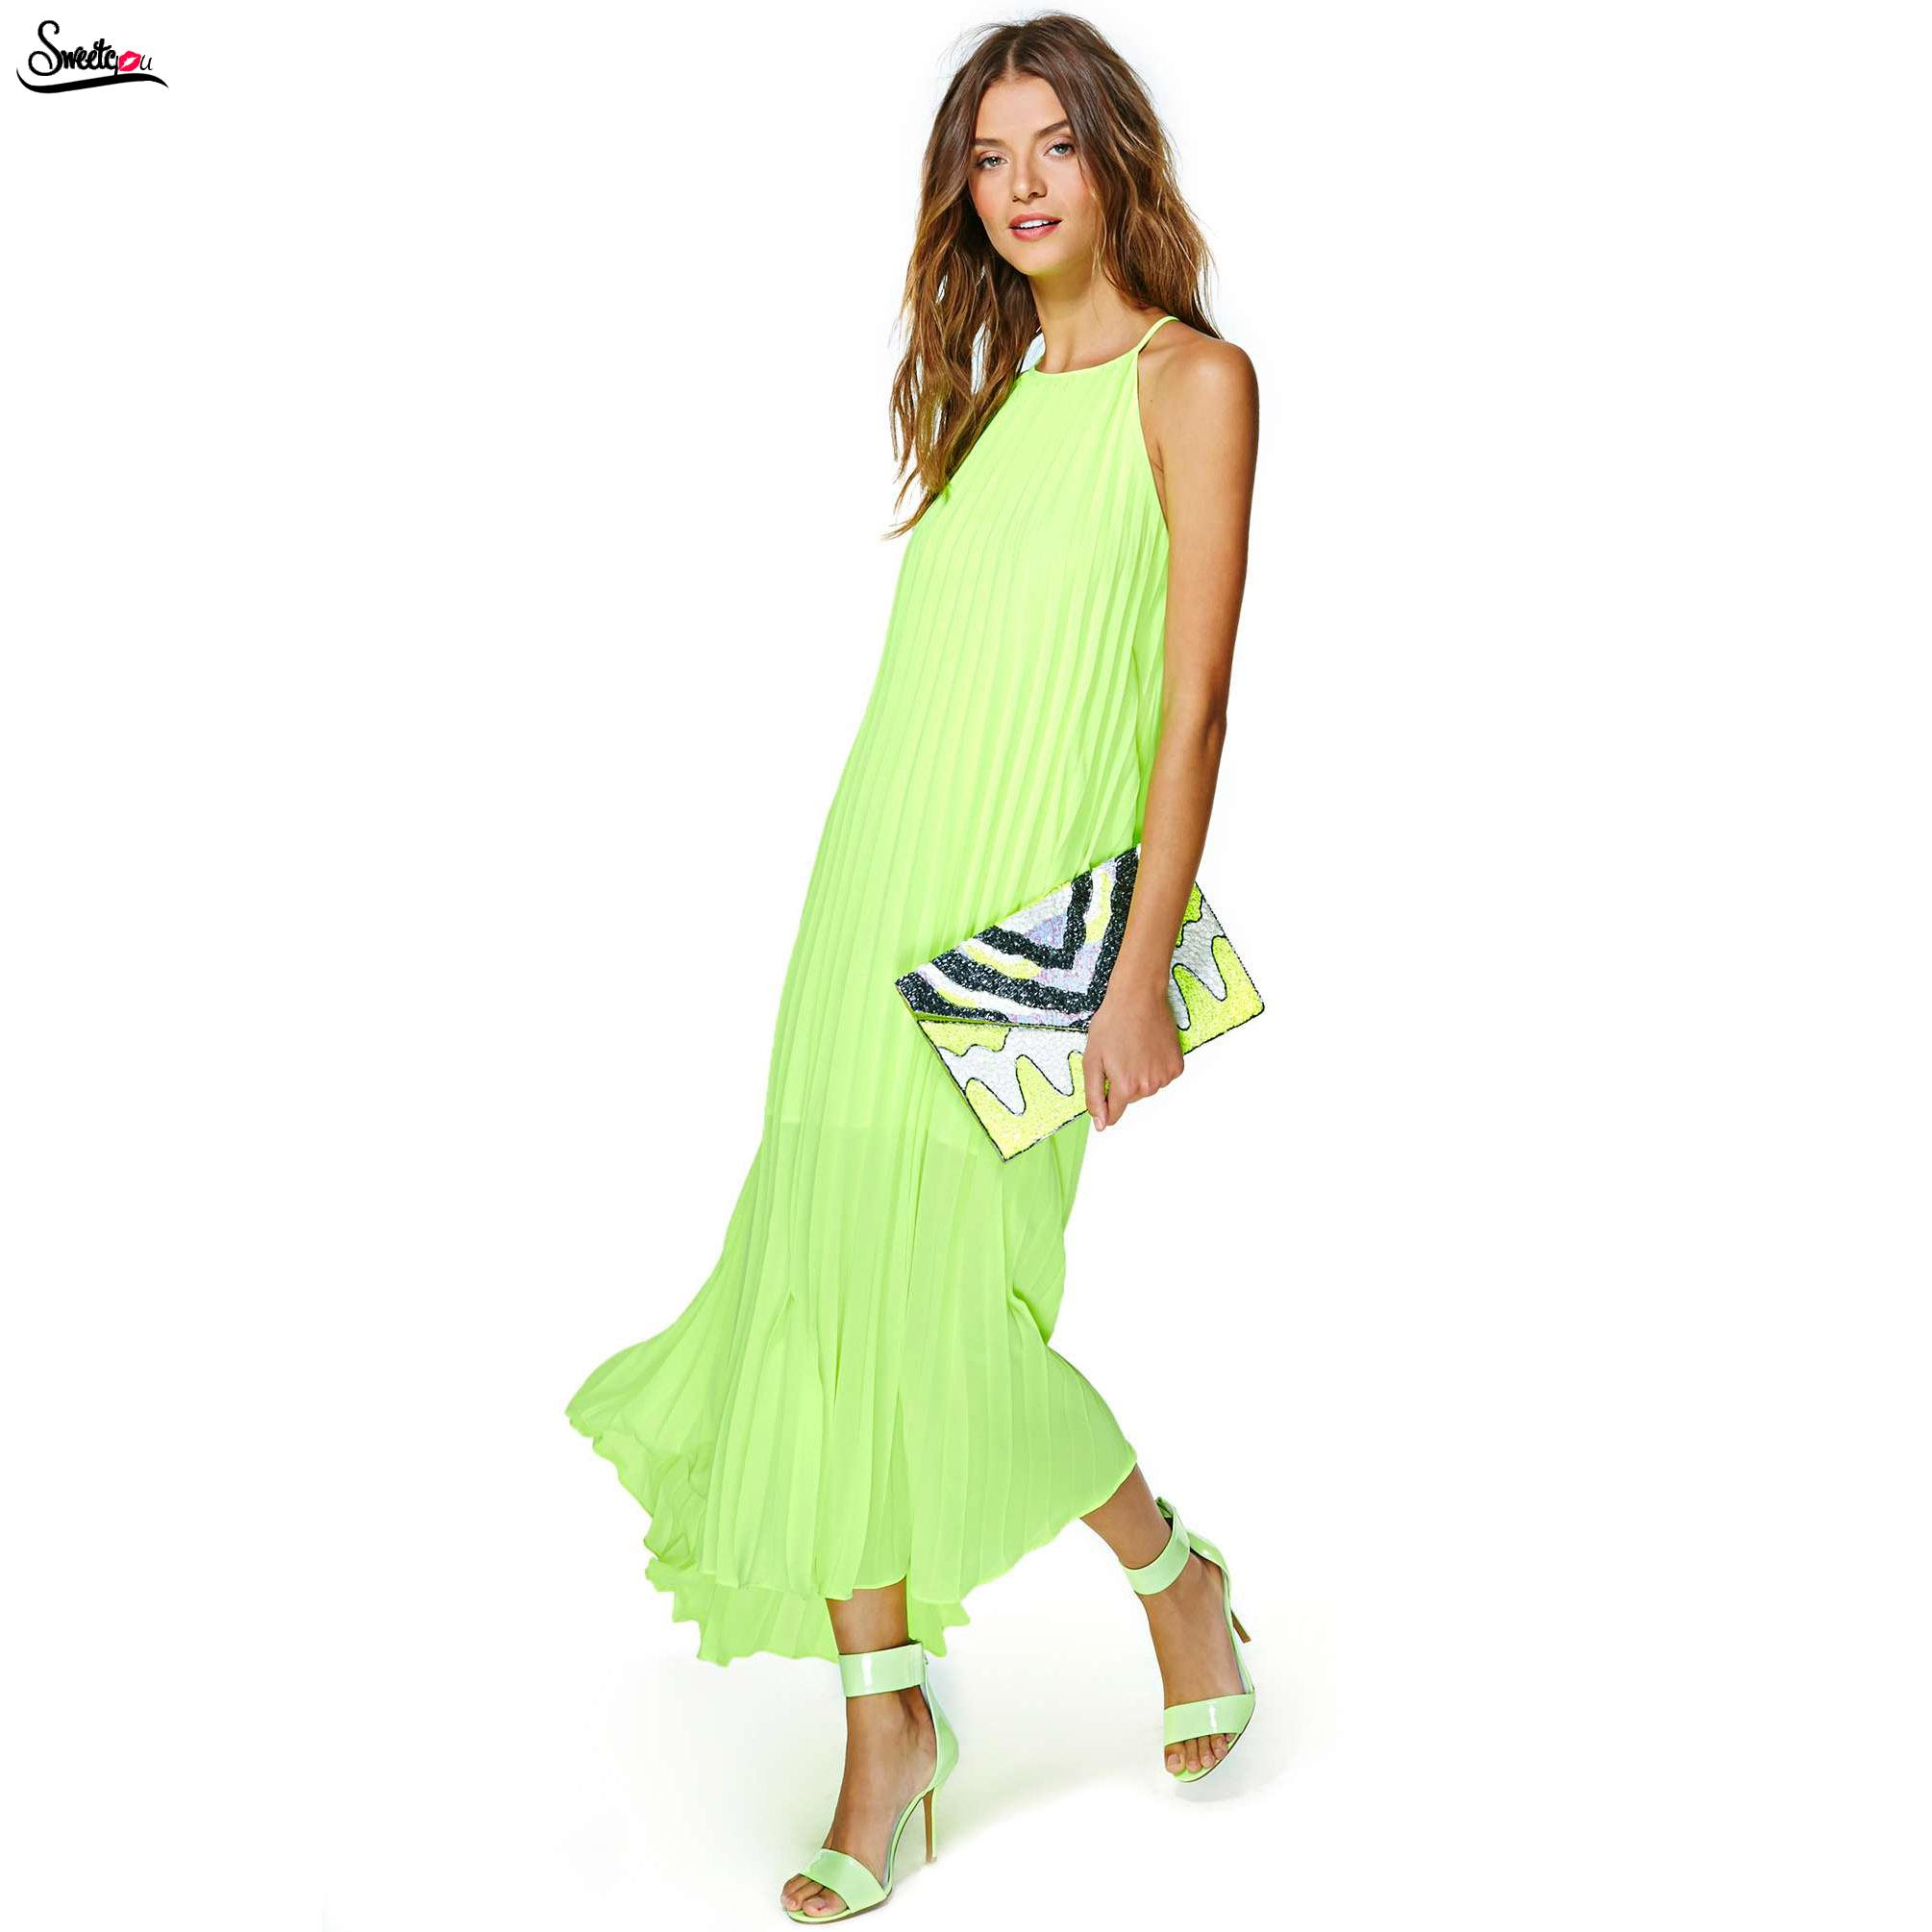 Awesome Dresses For Women Summer Dress Summer Dresses Summer Party Dress Women